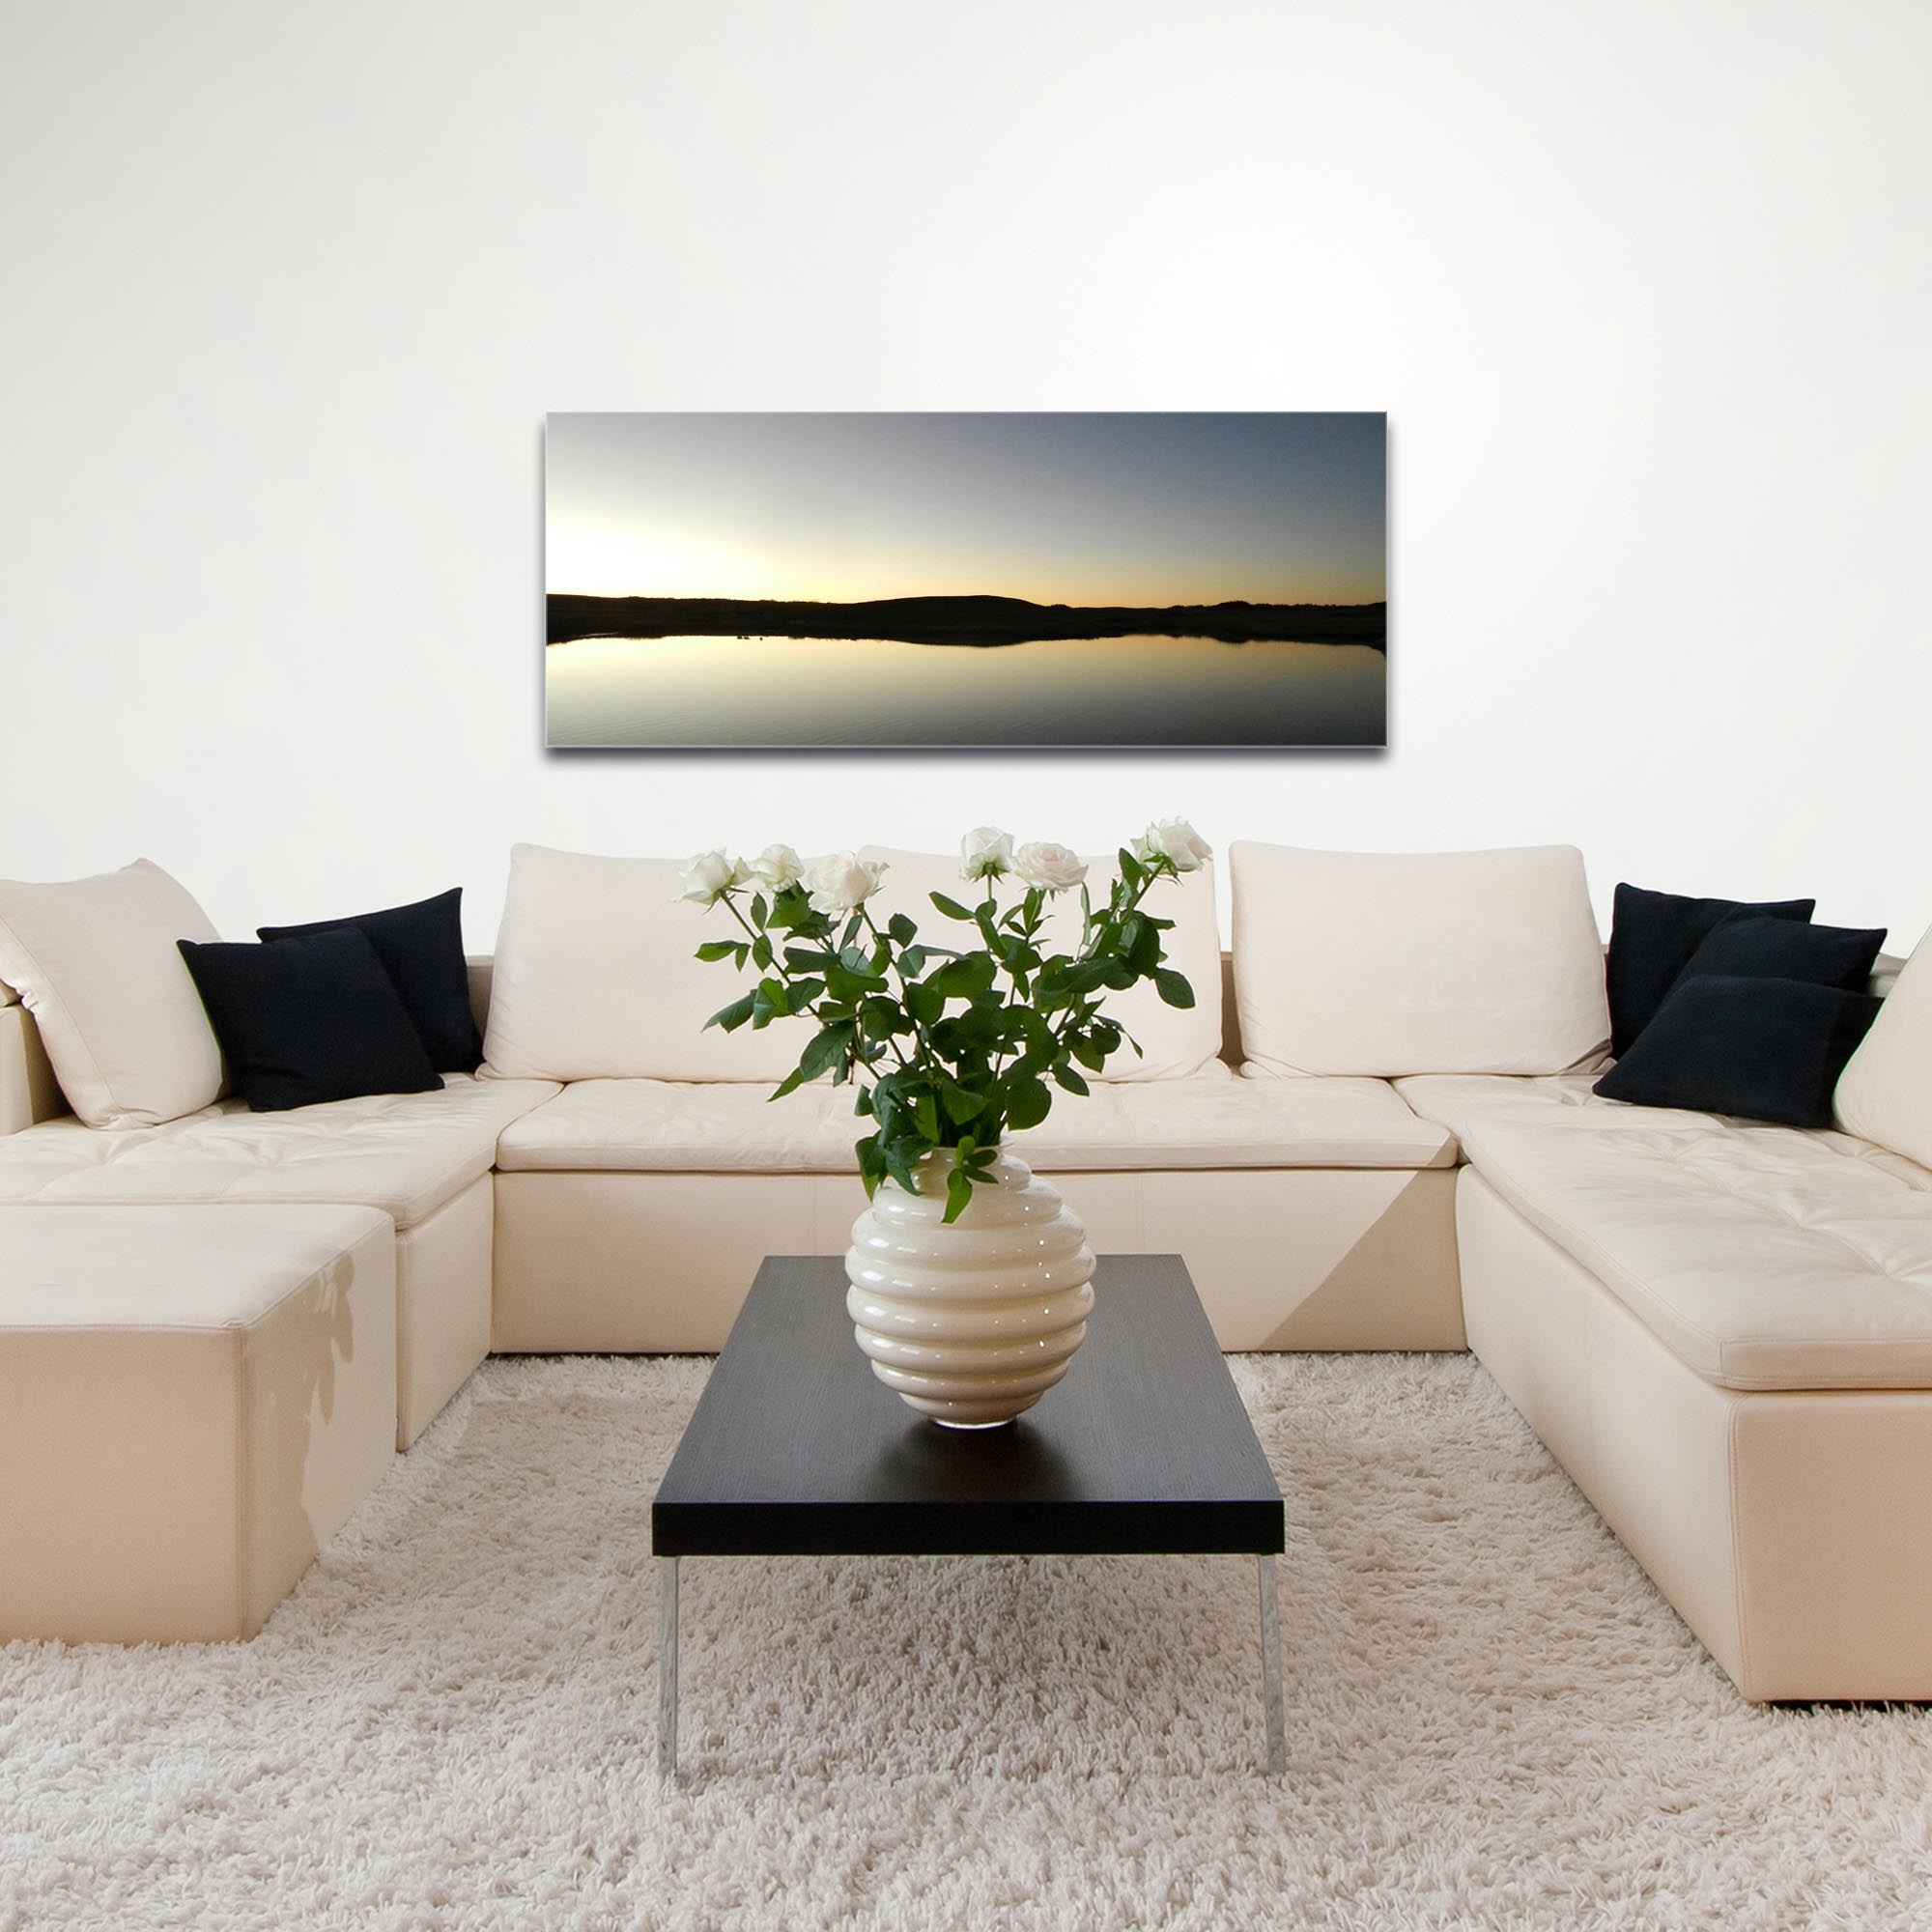 Western Wall Art 'Lakeside Sunset' - American West Decor on Metal or Plexiglass - Image 3